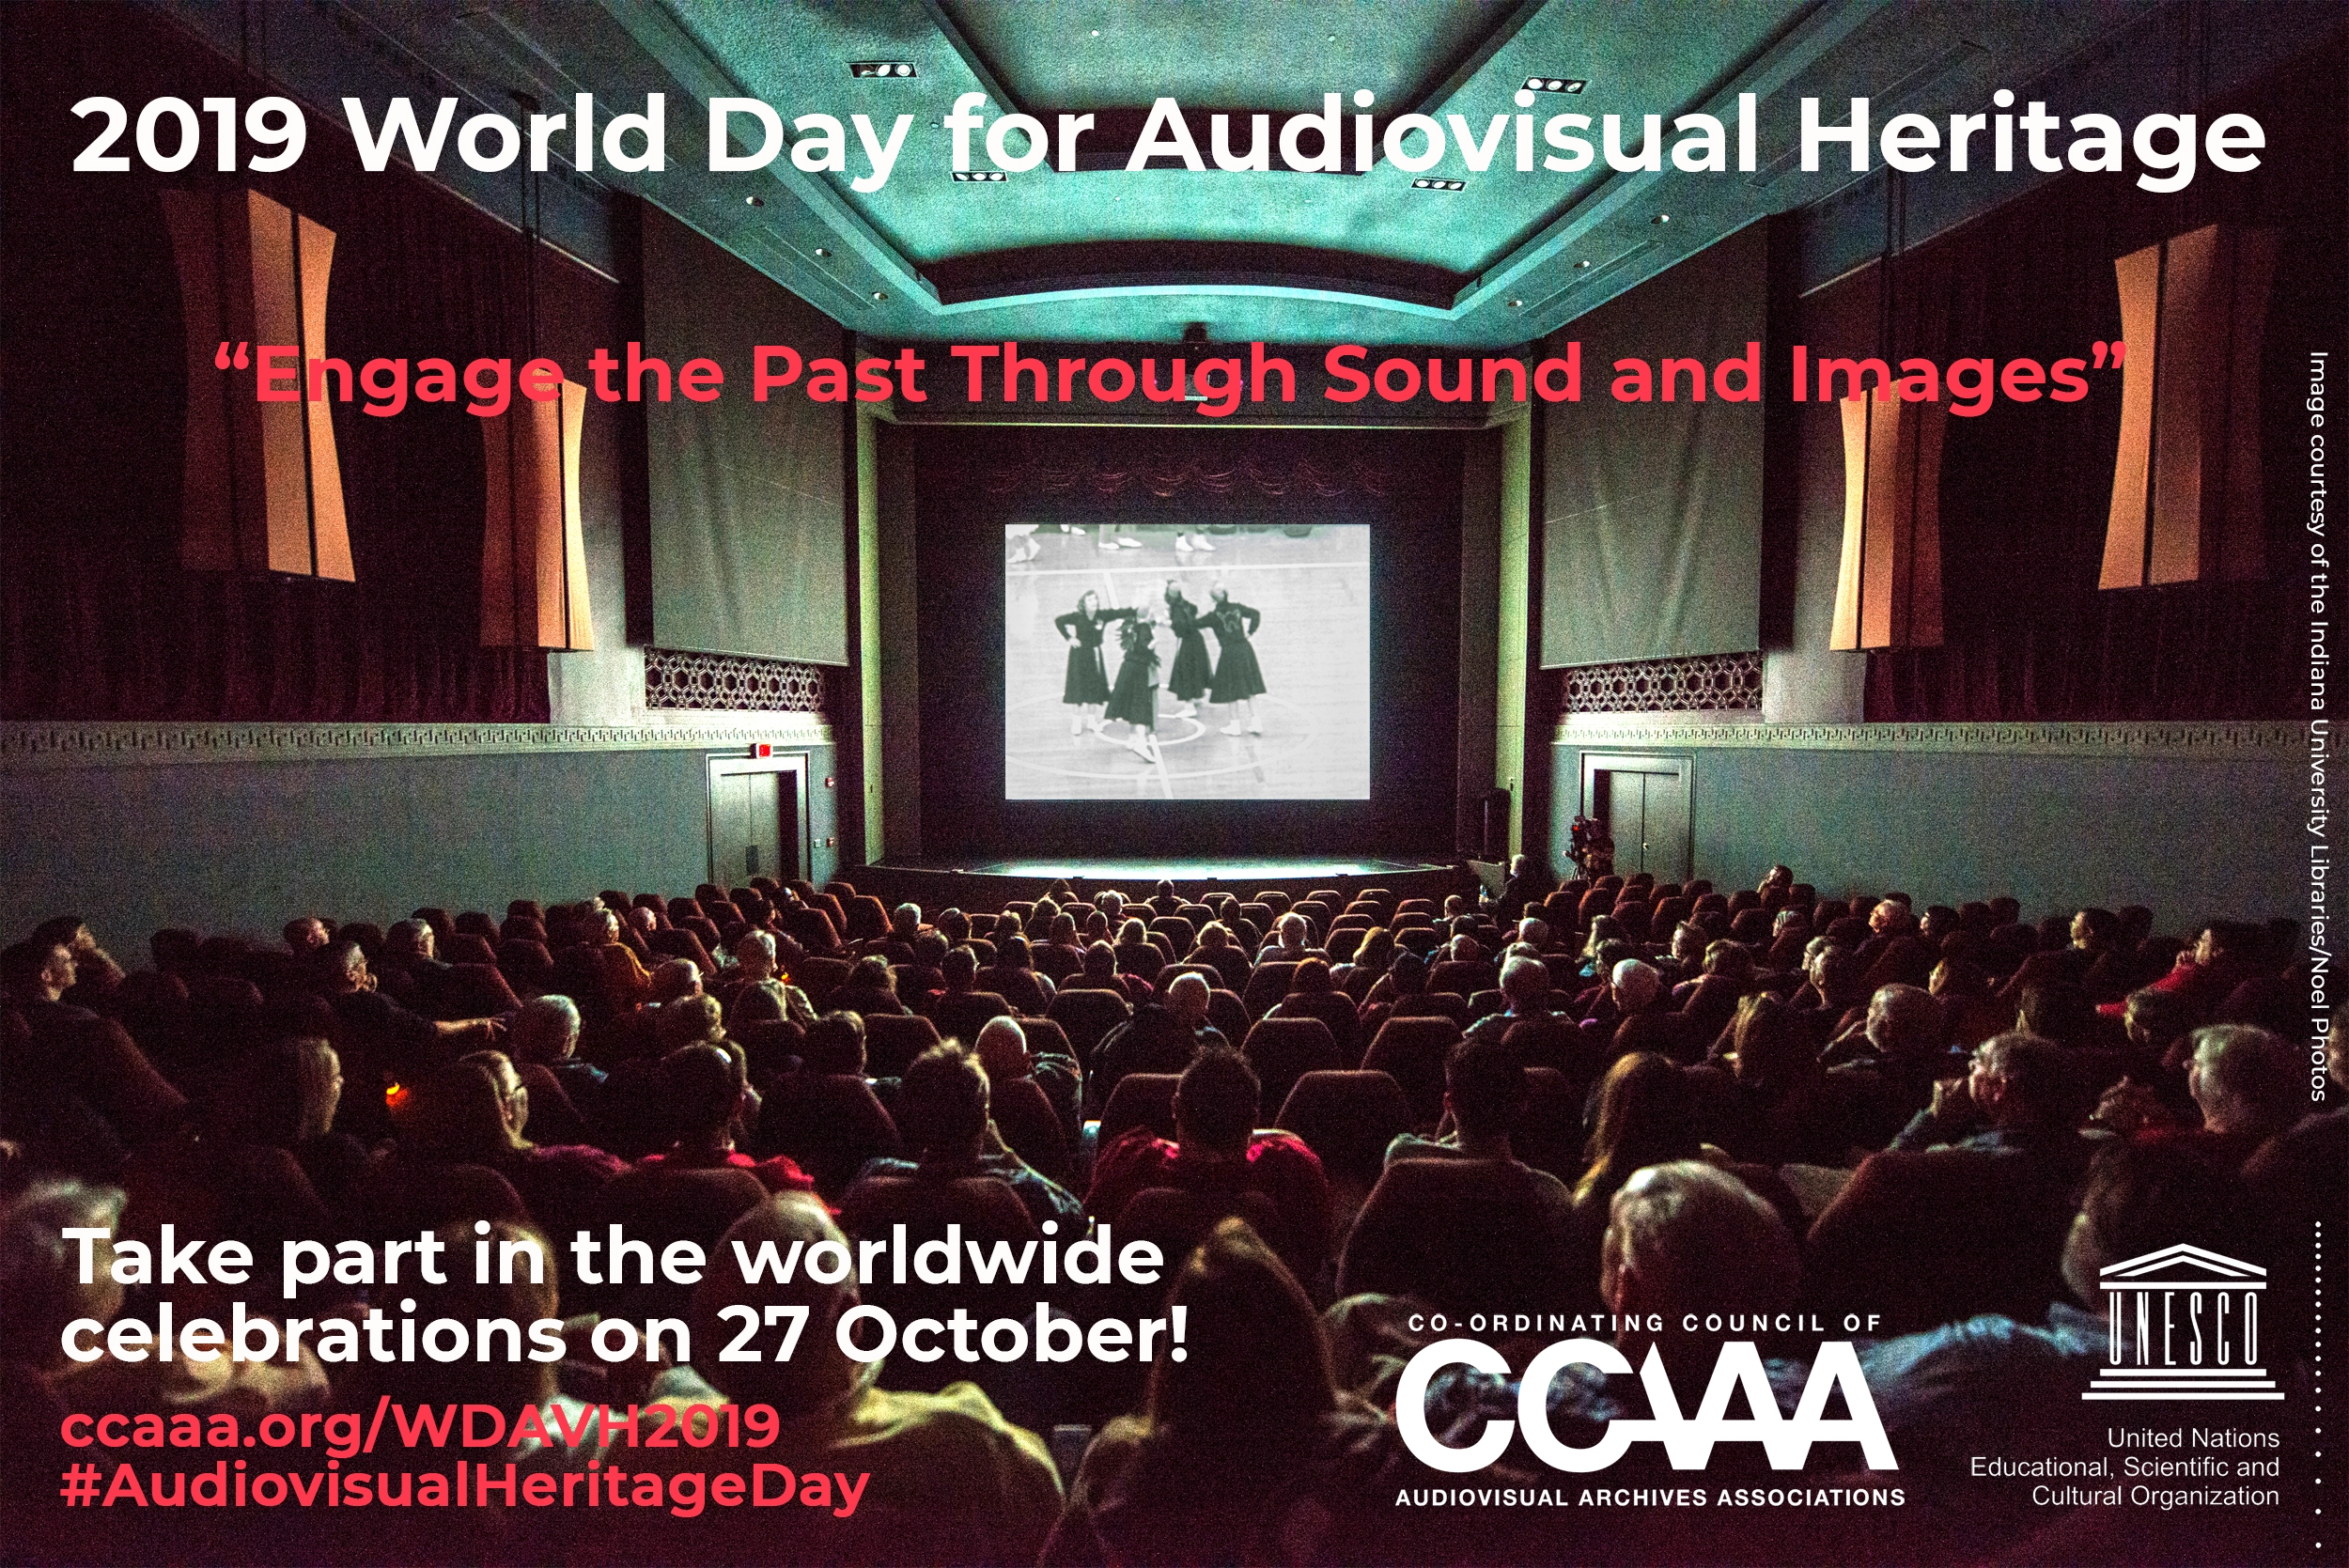 Fiat Ifta Join The Celebrations Of World Day For Audiovisual Heritage